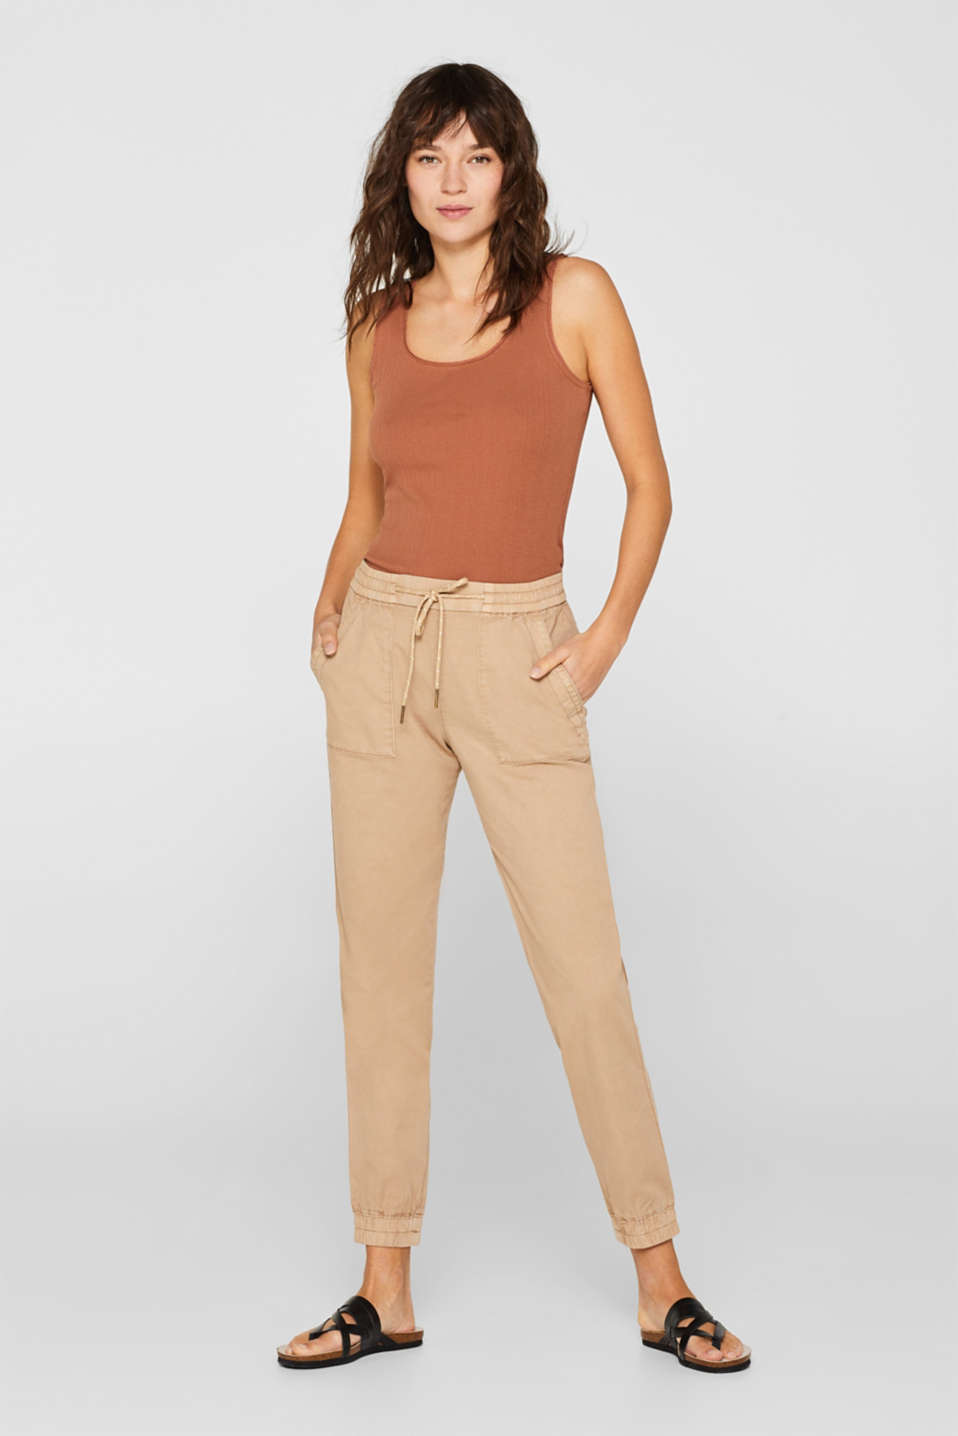 edc - With linen: casual cuffed trousers in a worker look